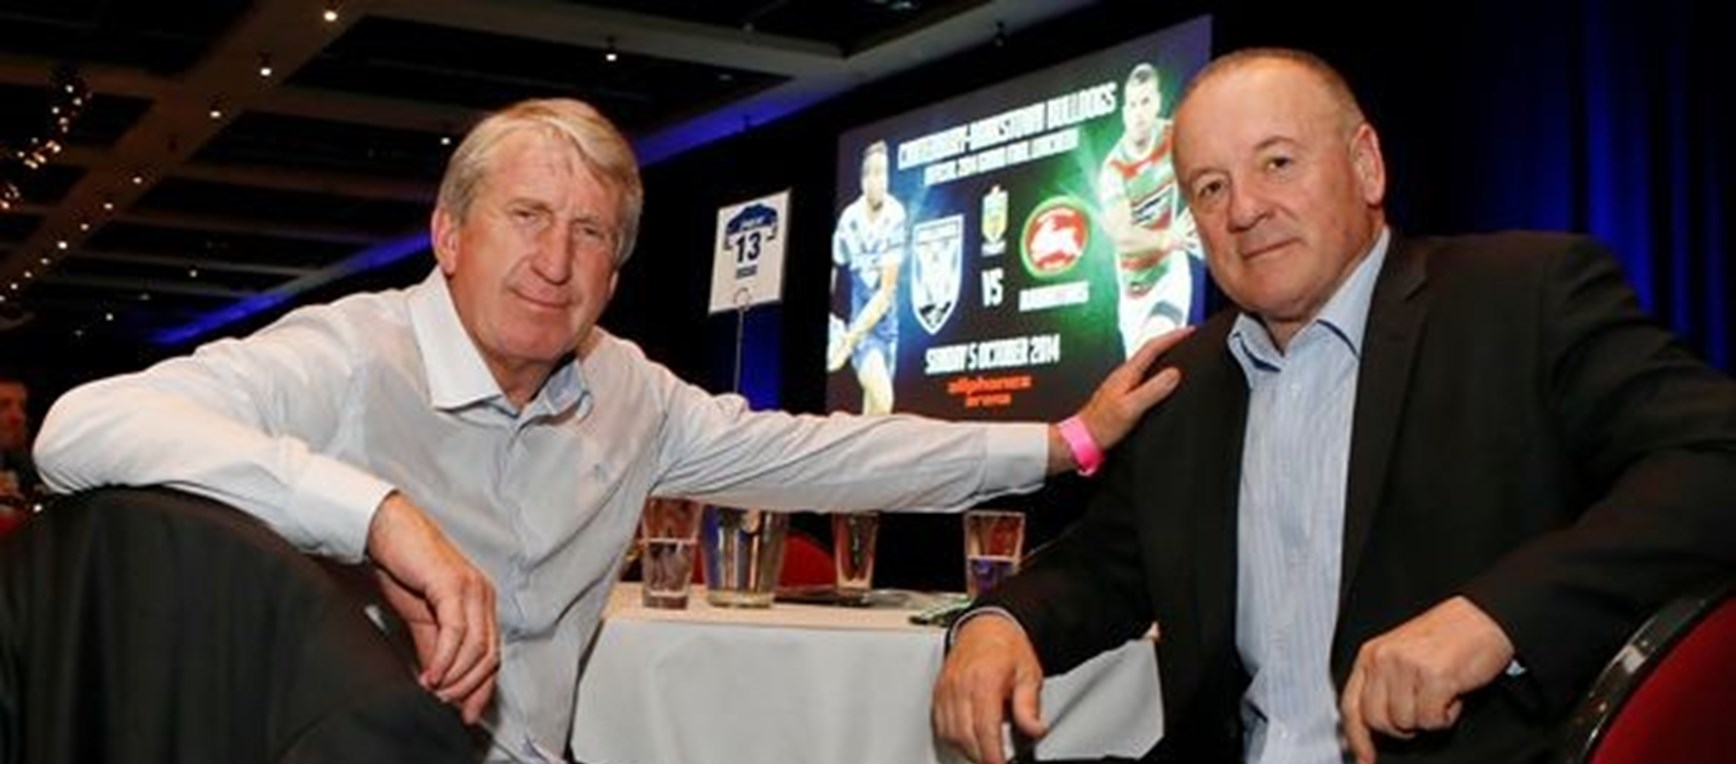 2014 Corporate GF Function